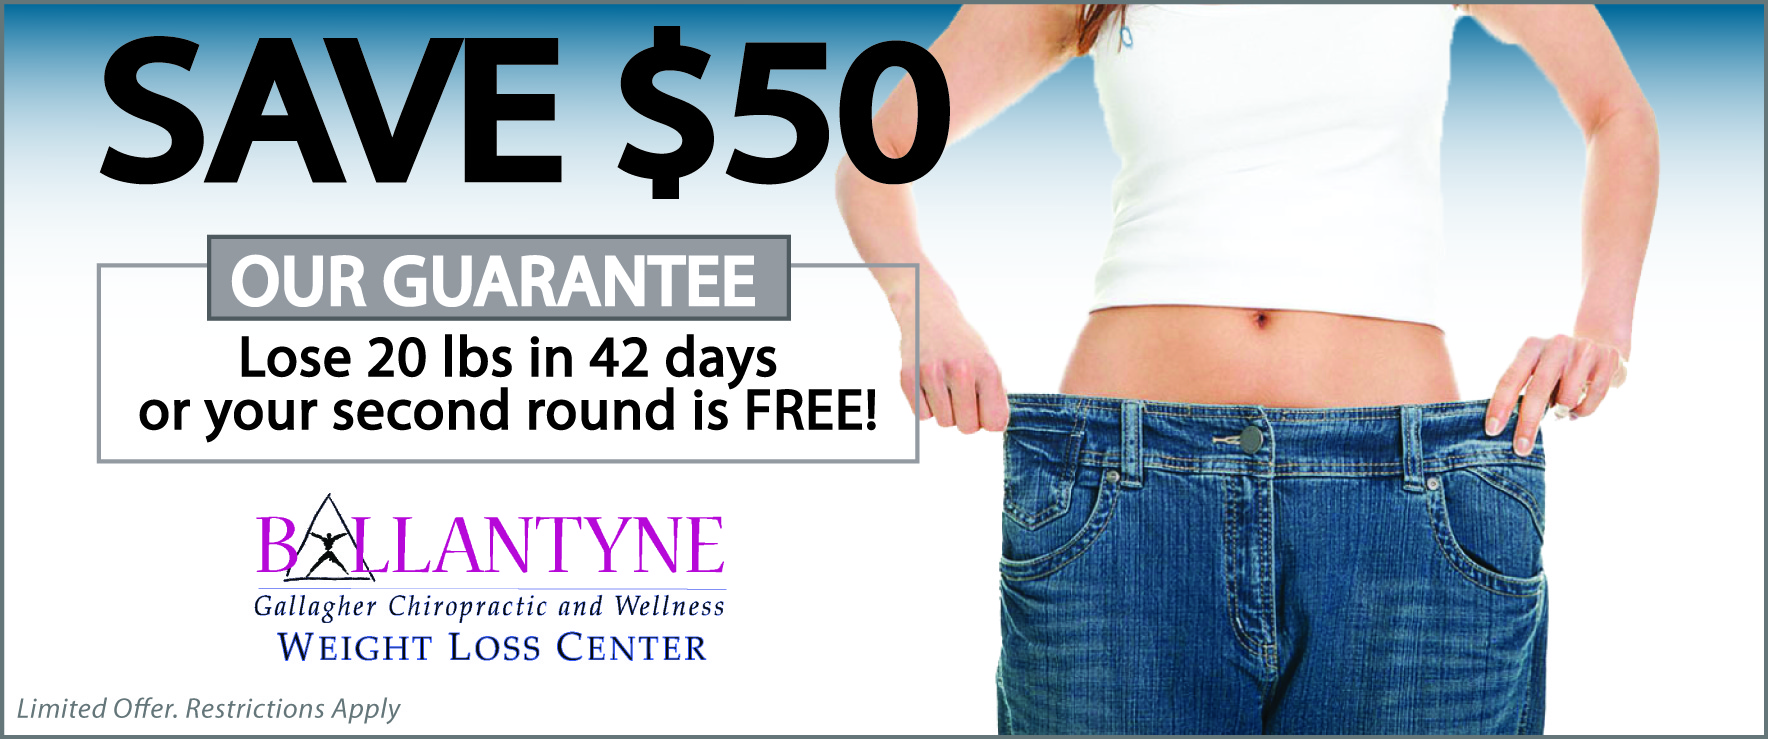 Save $50 at Ballantyne Weight Loss Center in Charlotte